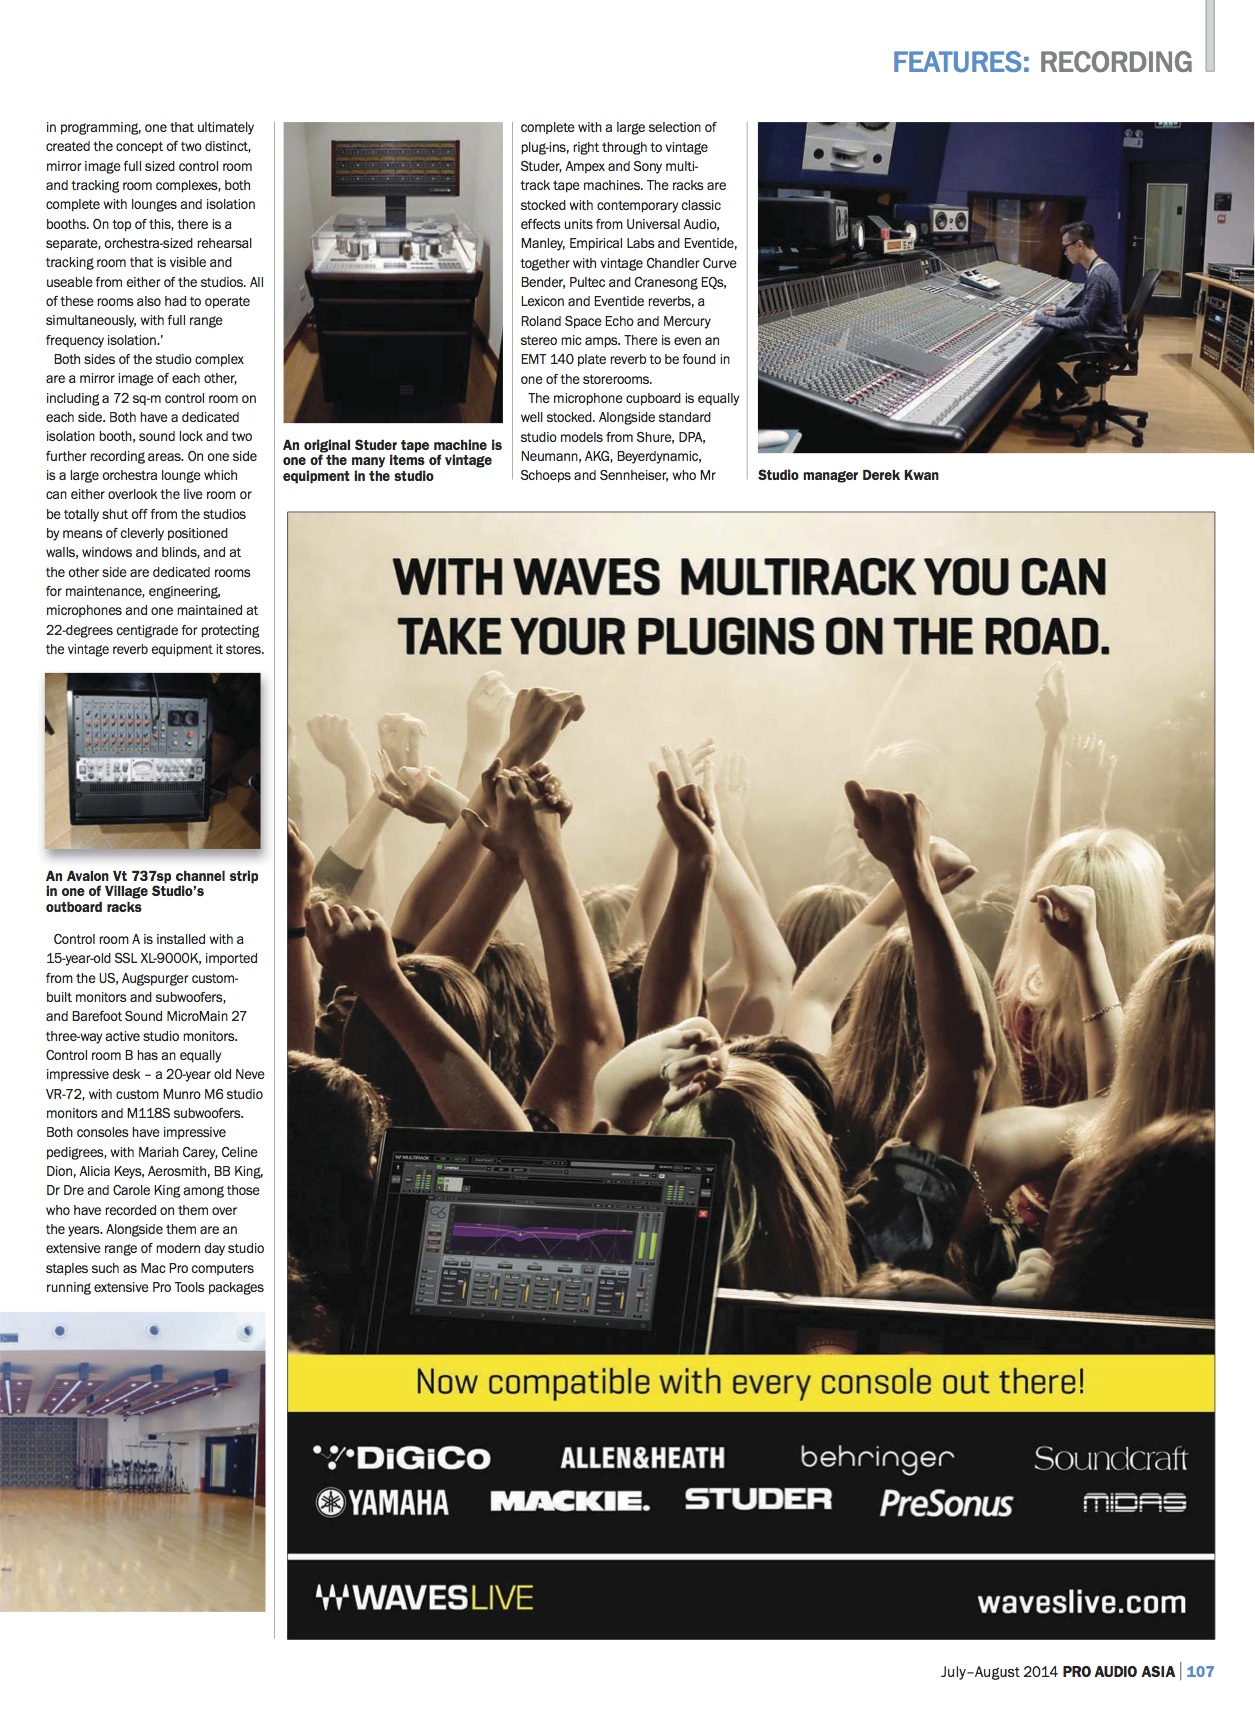 Pro Audio Asia - Village Studios - p2 July 2014